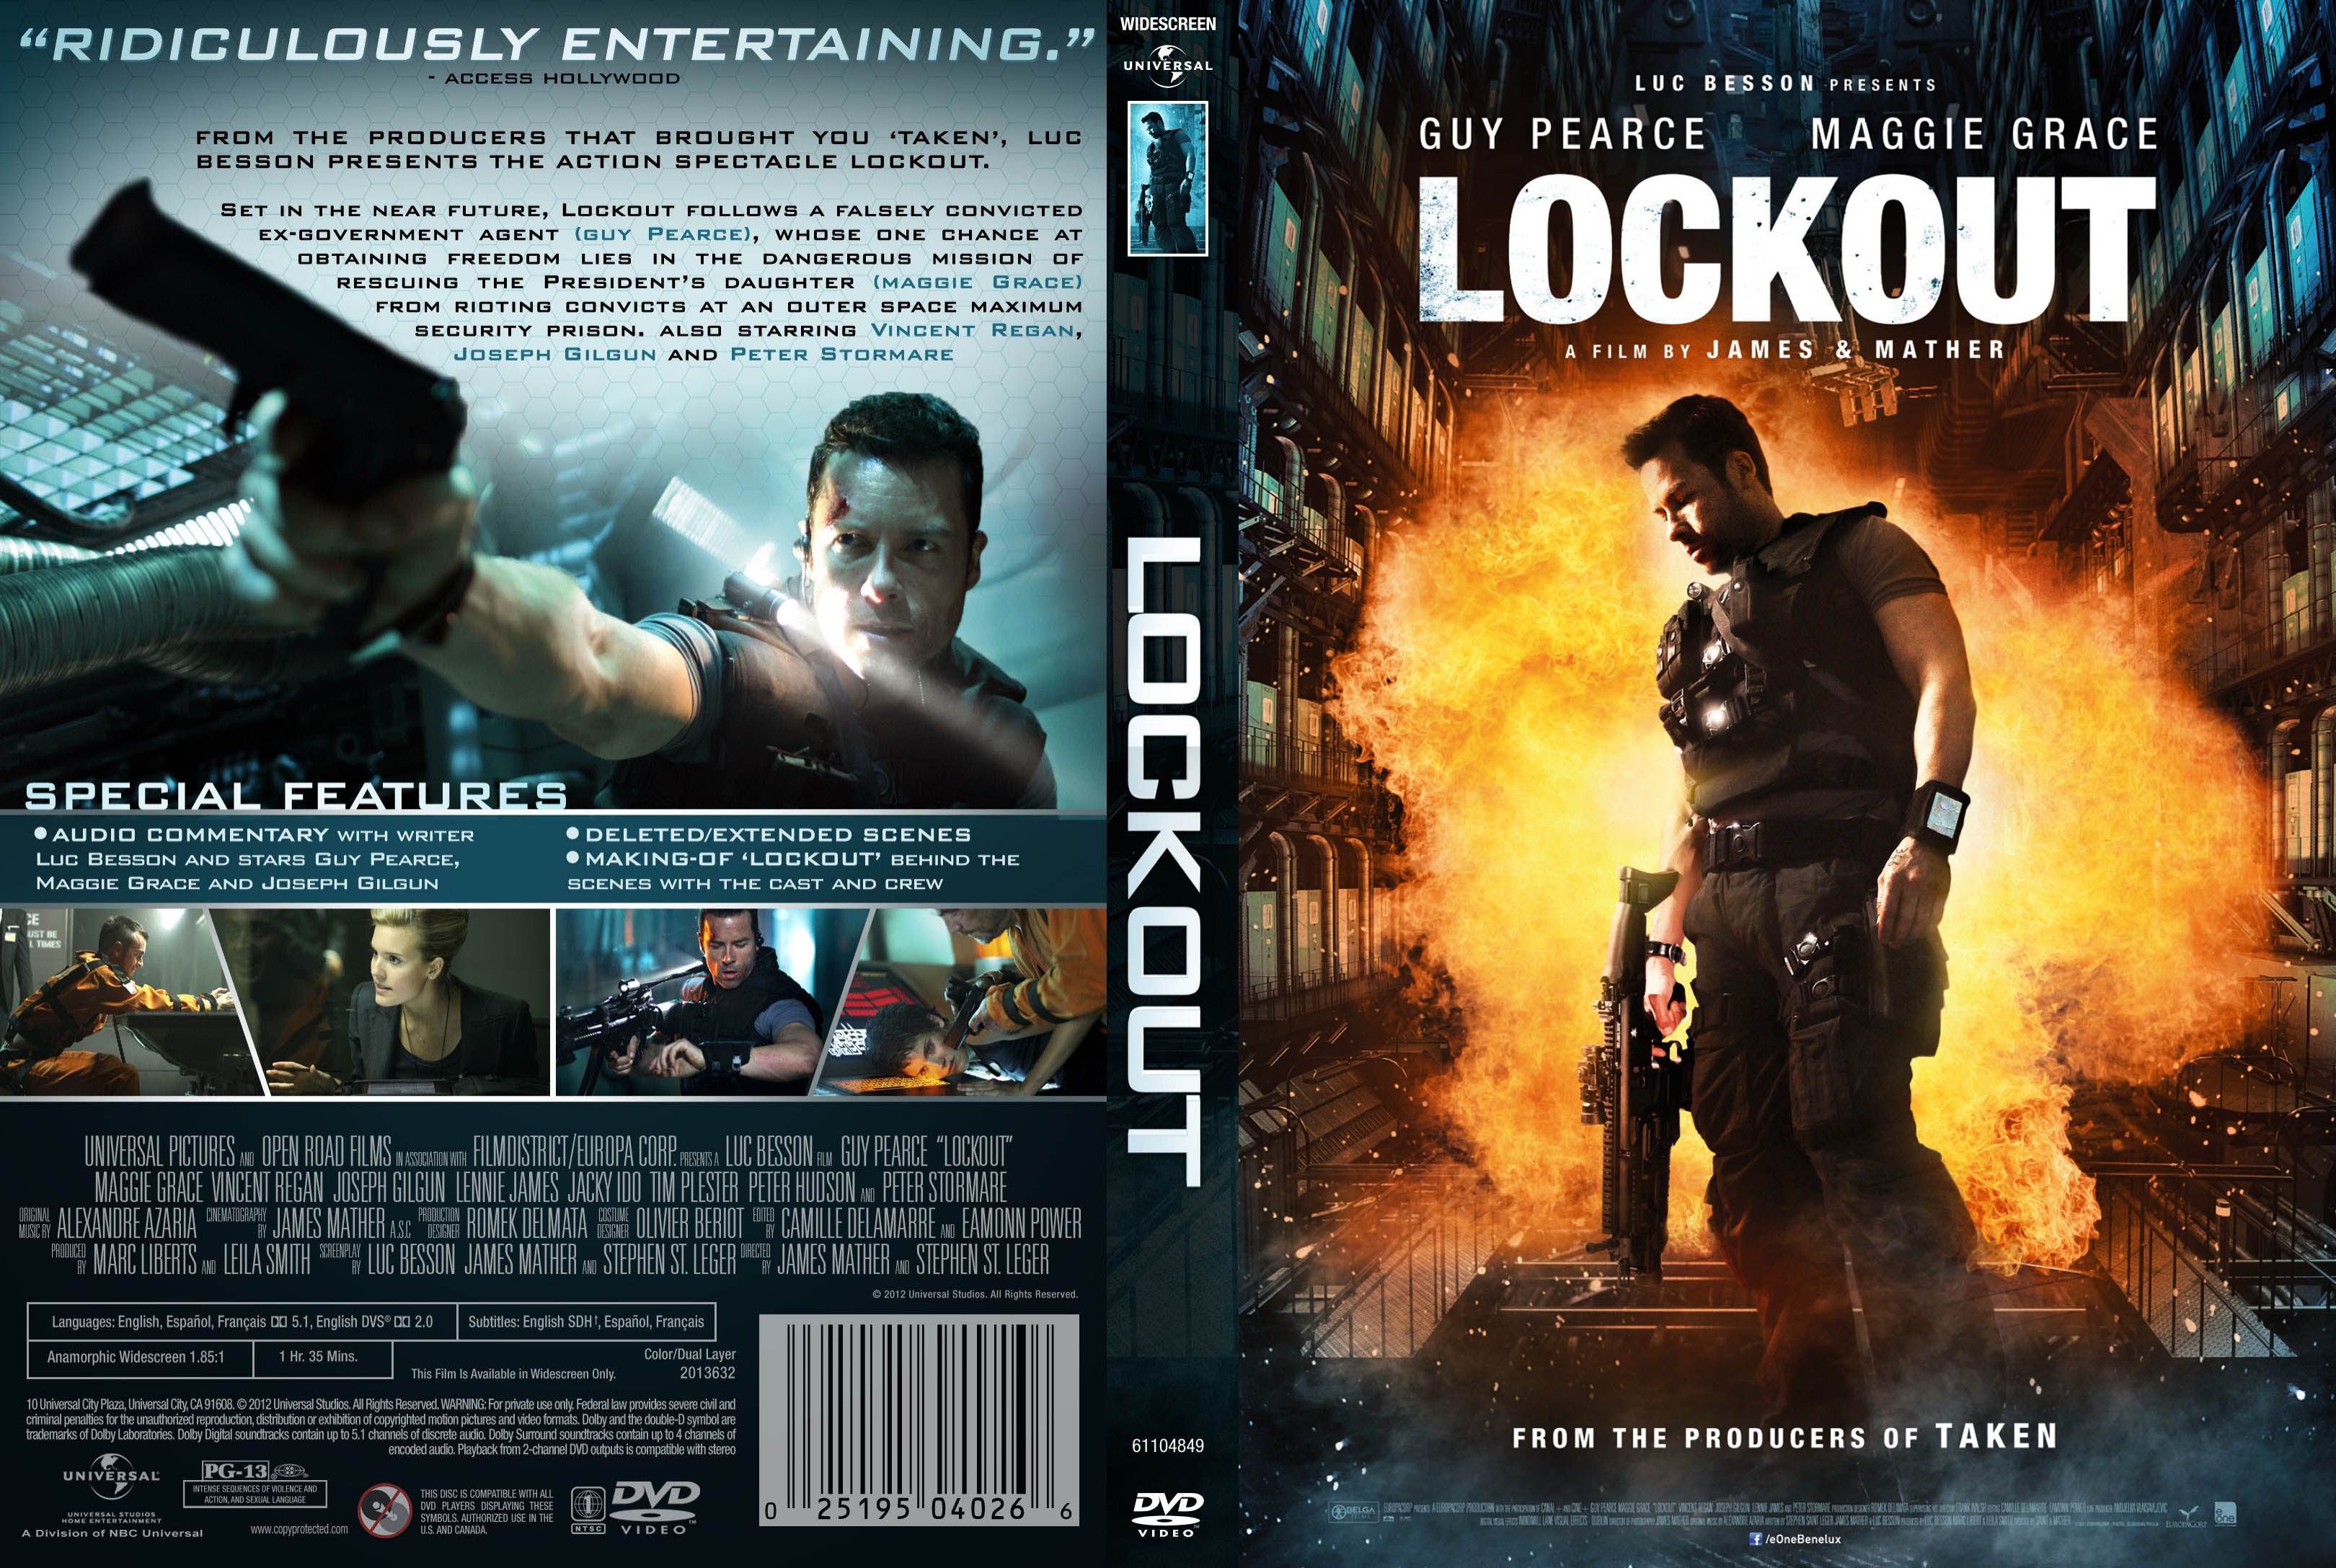 covers box sk lockout high quality dvd blueray movie